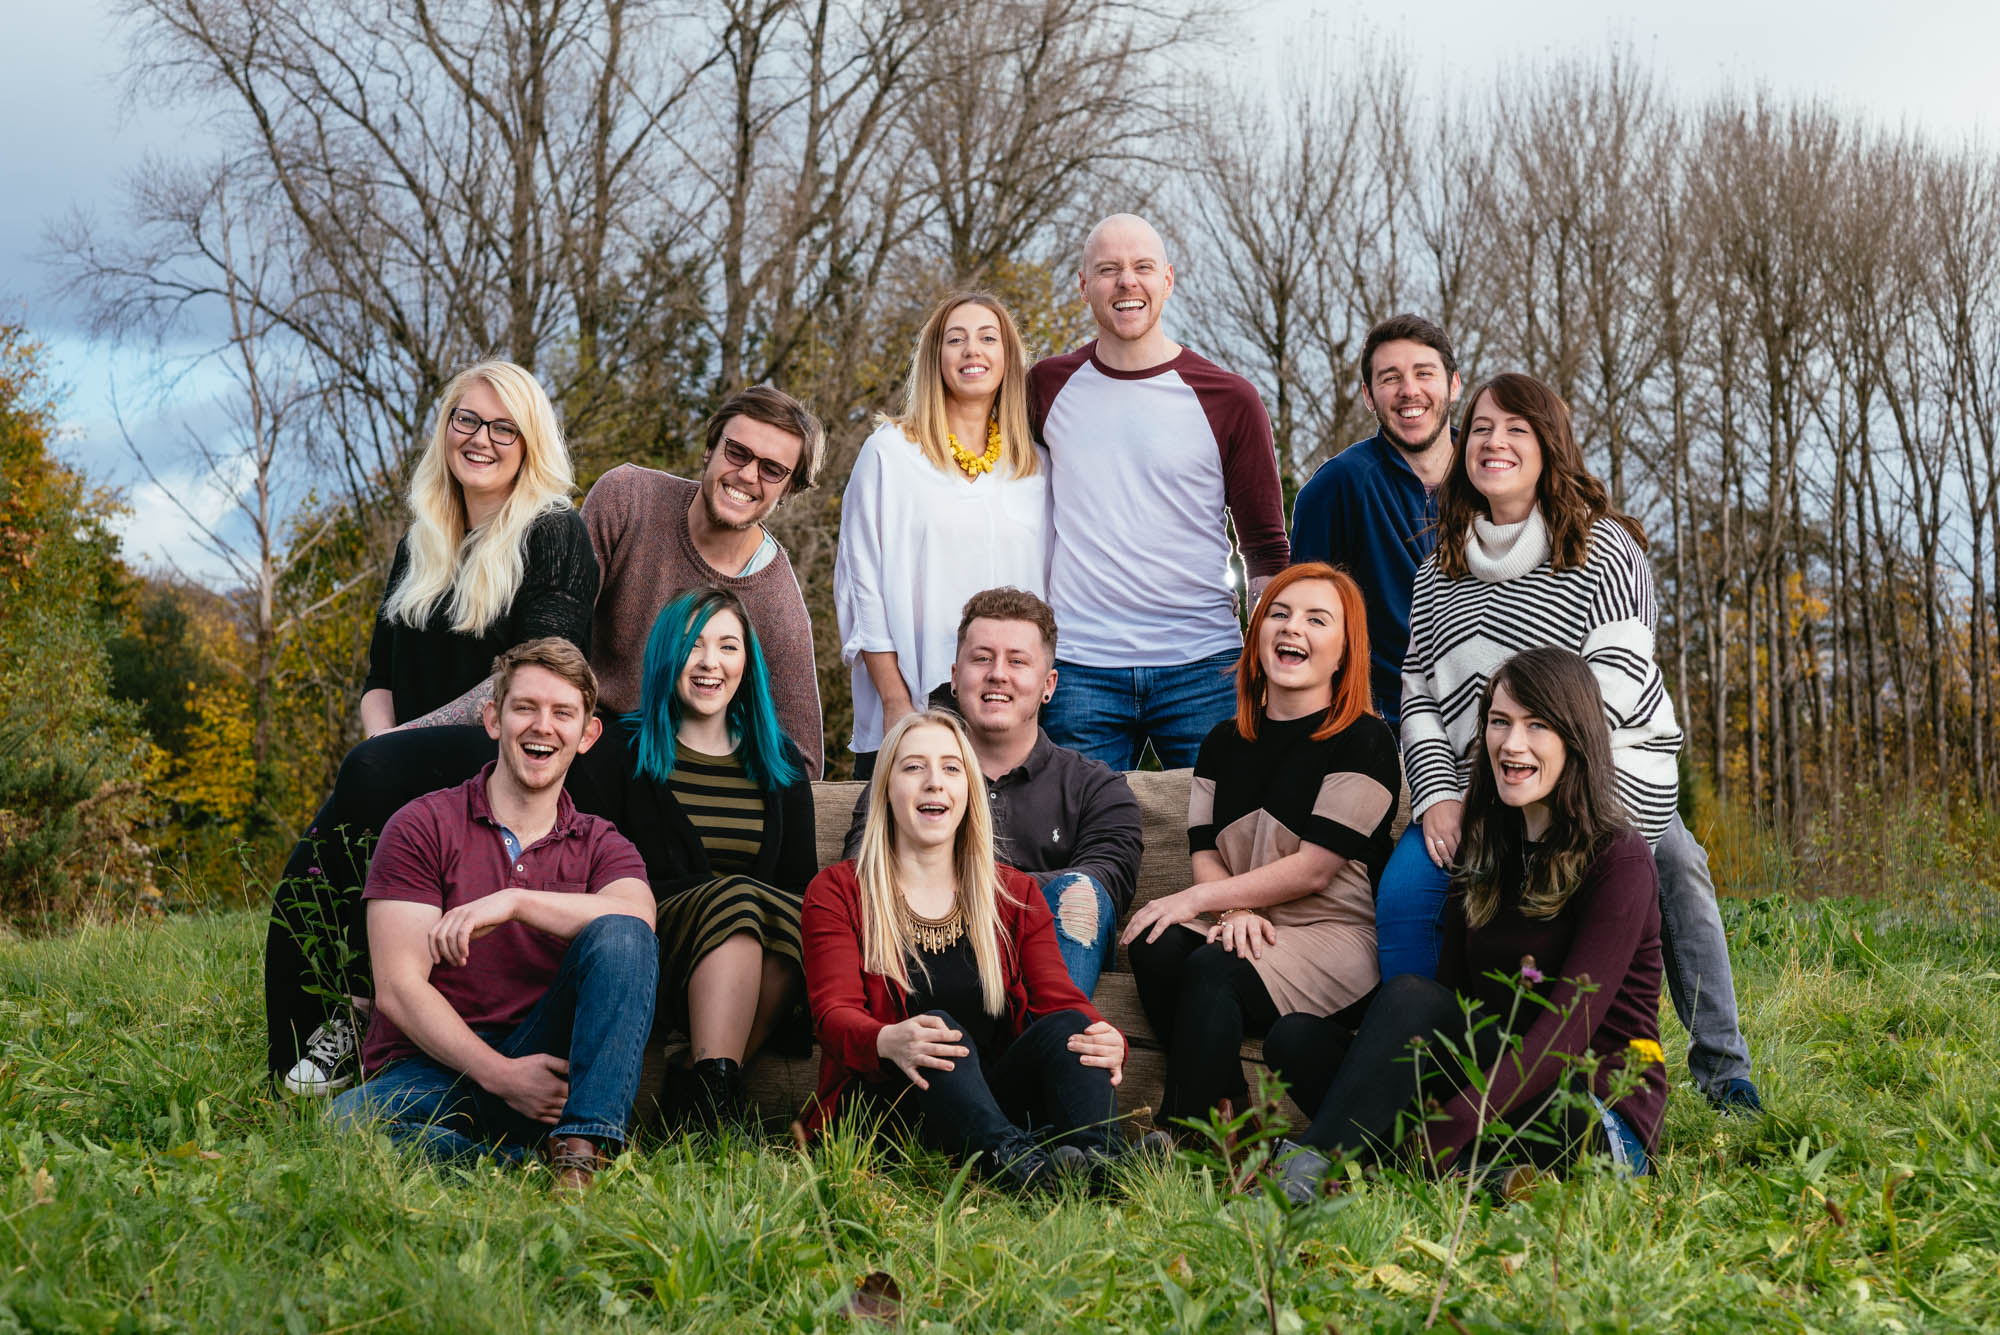 A team photo of the staff of dust and things laughing